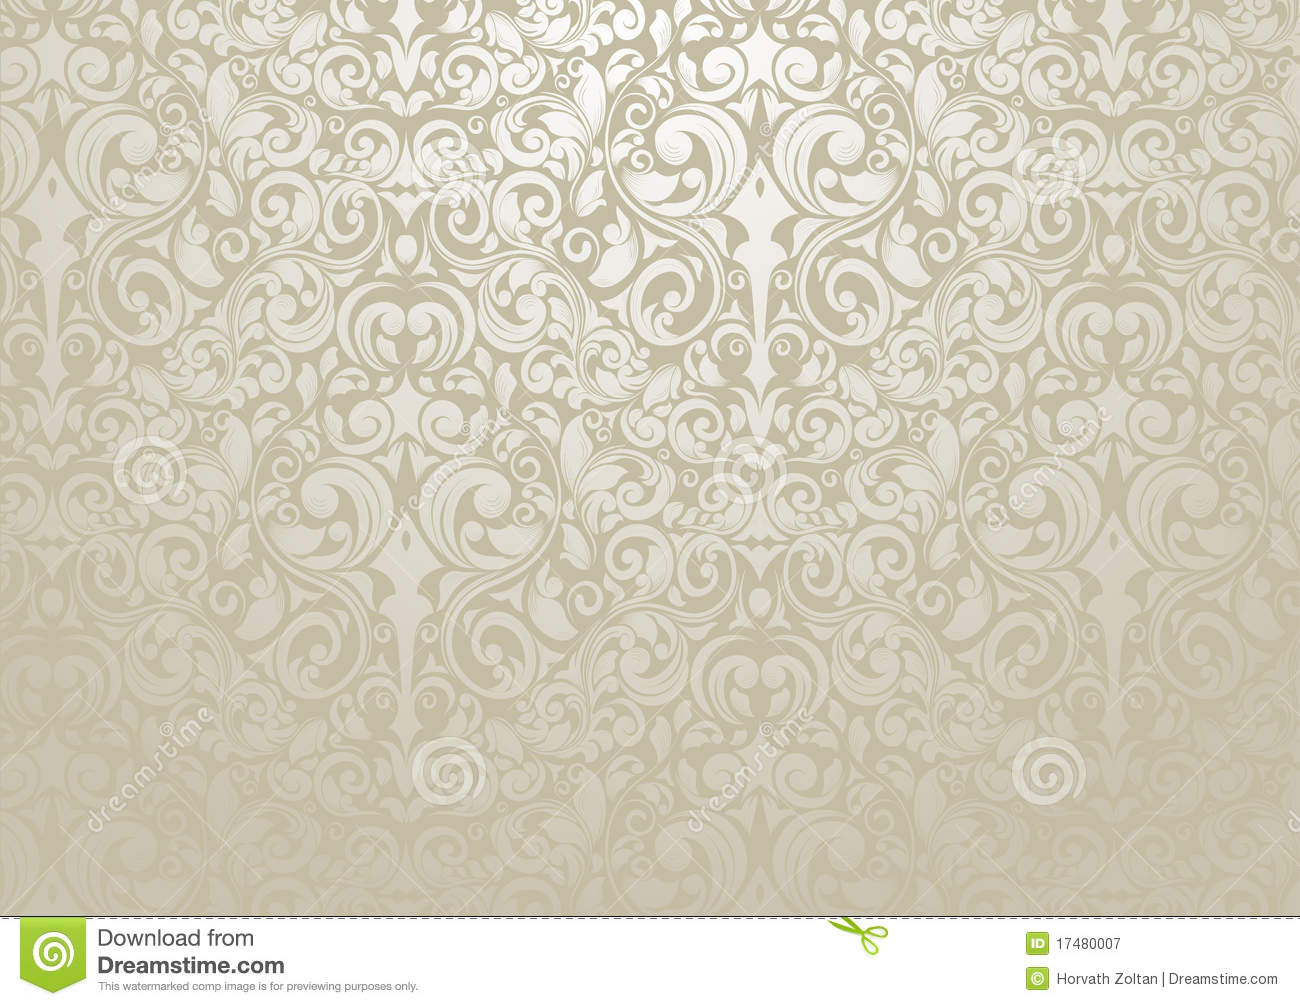 silver wallpaper stock vector illustration of flower 17480007. Black Bedroom Furniture Sets. Home Design Ideas